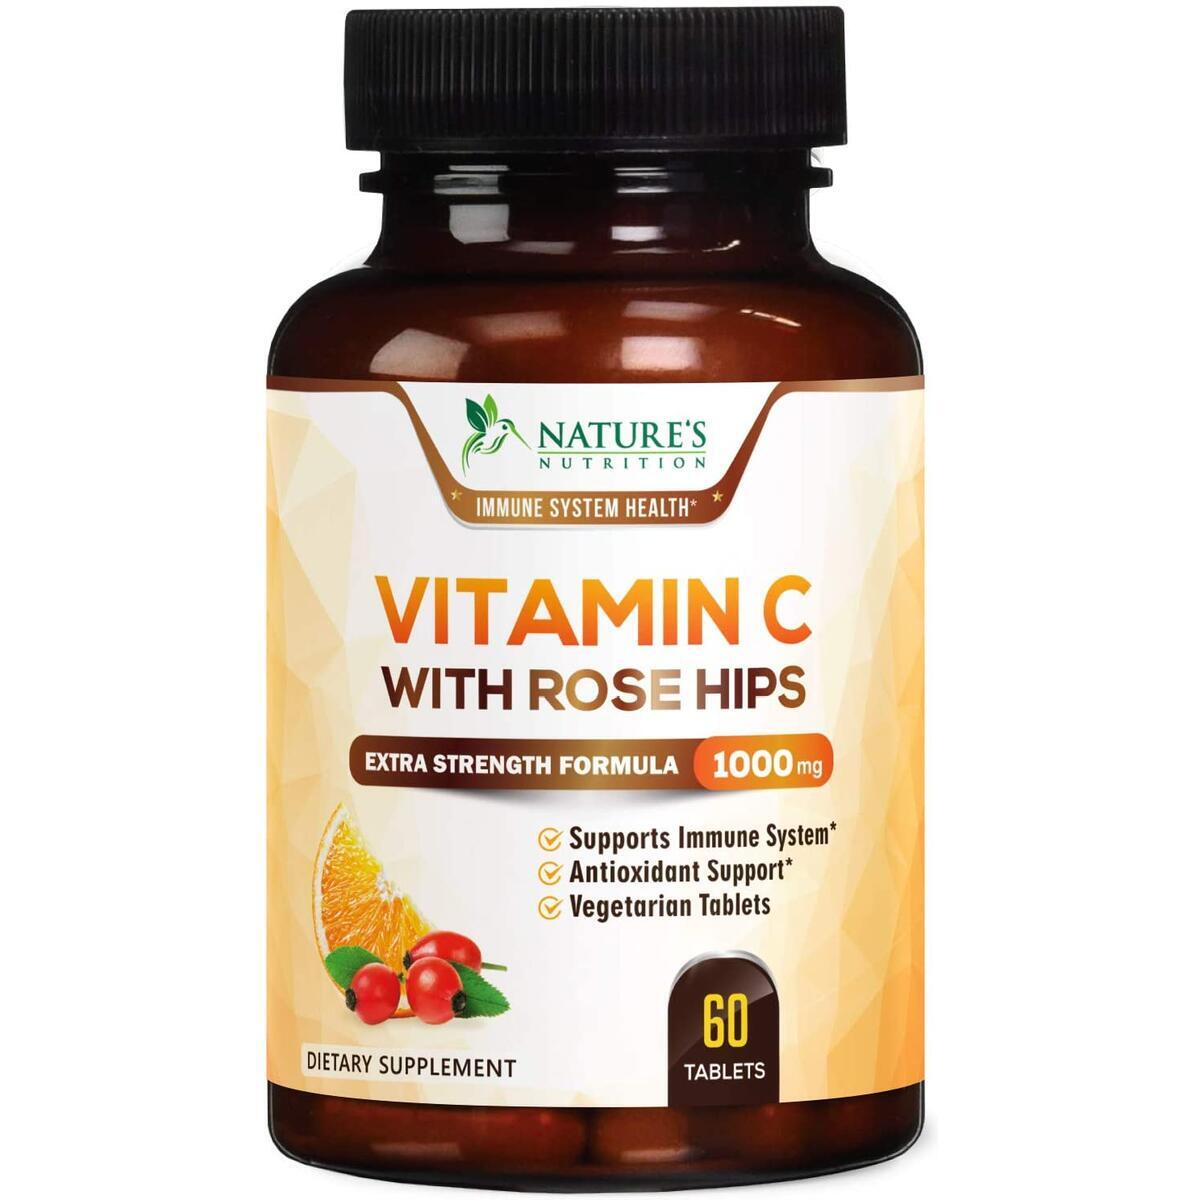 Vitamin C Supplement High Potency Immune System Support 1000mg - VIT C Chewable Pills with Rose Hips - Made in USA - Best Vegan Ascorbic Acid Antioxidant Support for Men and Women - 60 Tablets